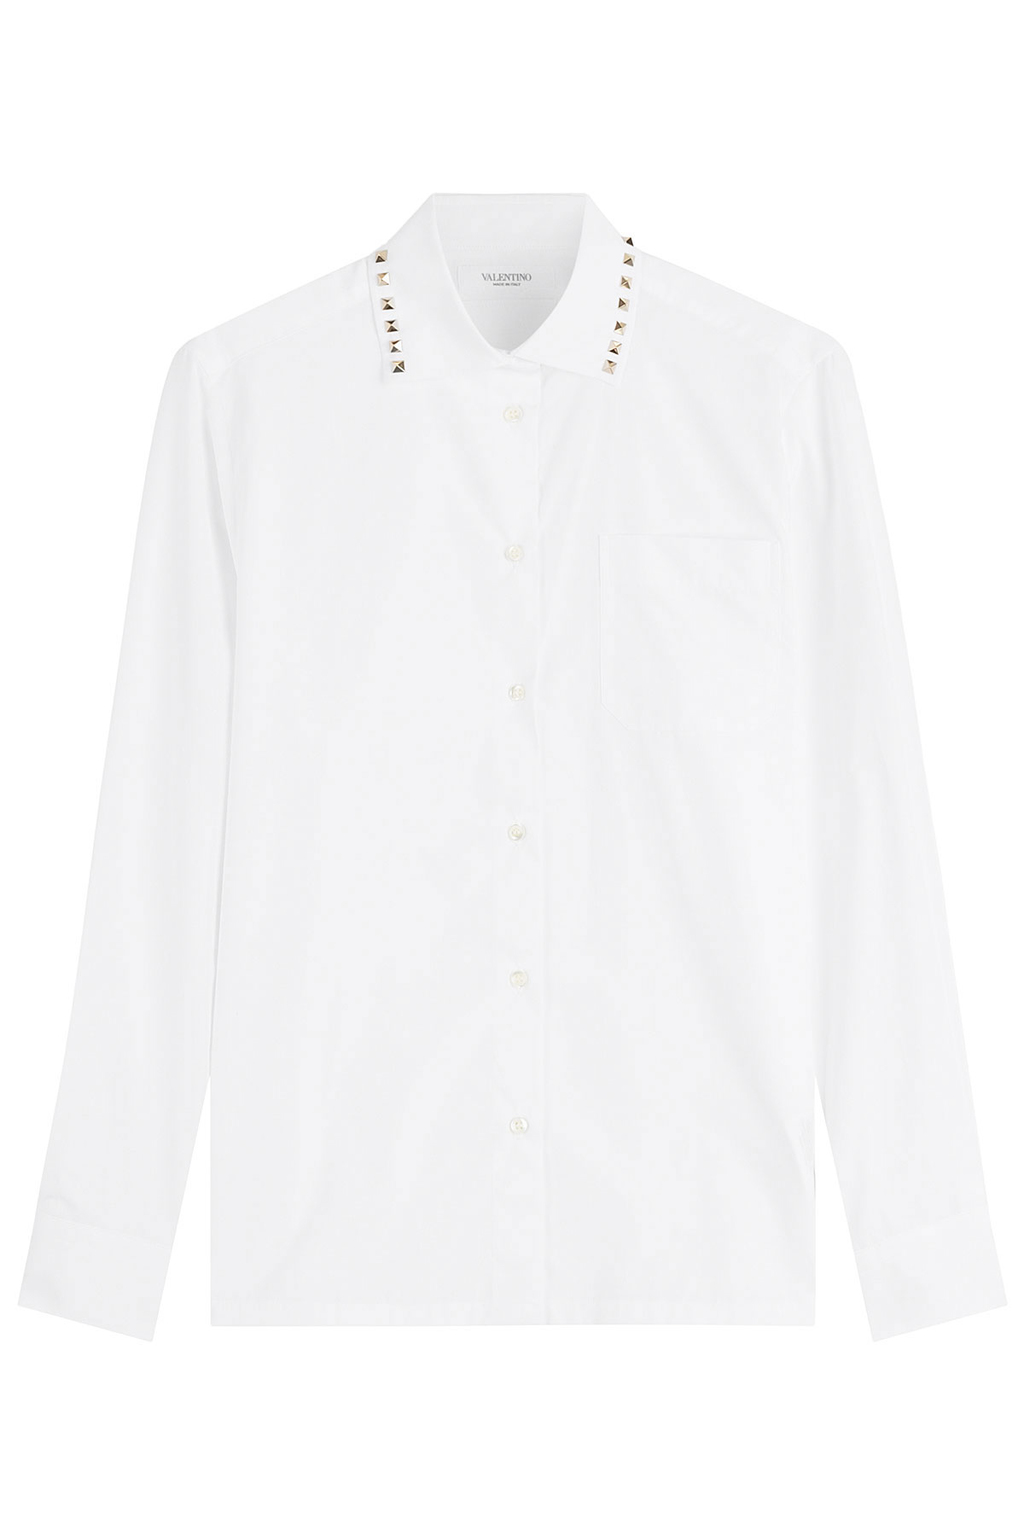 Rockstud Cotton Shirt - neckline: shirt collar/peter pan/zip with opening; pattern: plain; style: shirt; predominant colour: white; occasions: work; length: standard; fibres: cotton - 100%; fit: body skimming; sleeve length: long sleeve; sleeve style: standard; texture group: cotton feel fabrics; pattern type: fabric; embellishment: studs; season: a/w 2016; wardrobe: highlight; embellishment location: neck